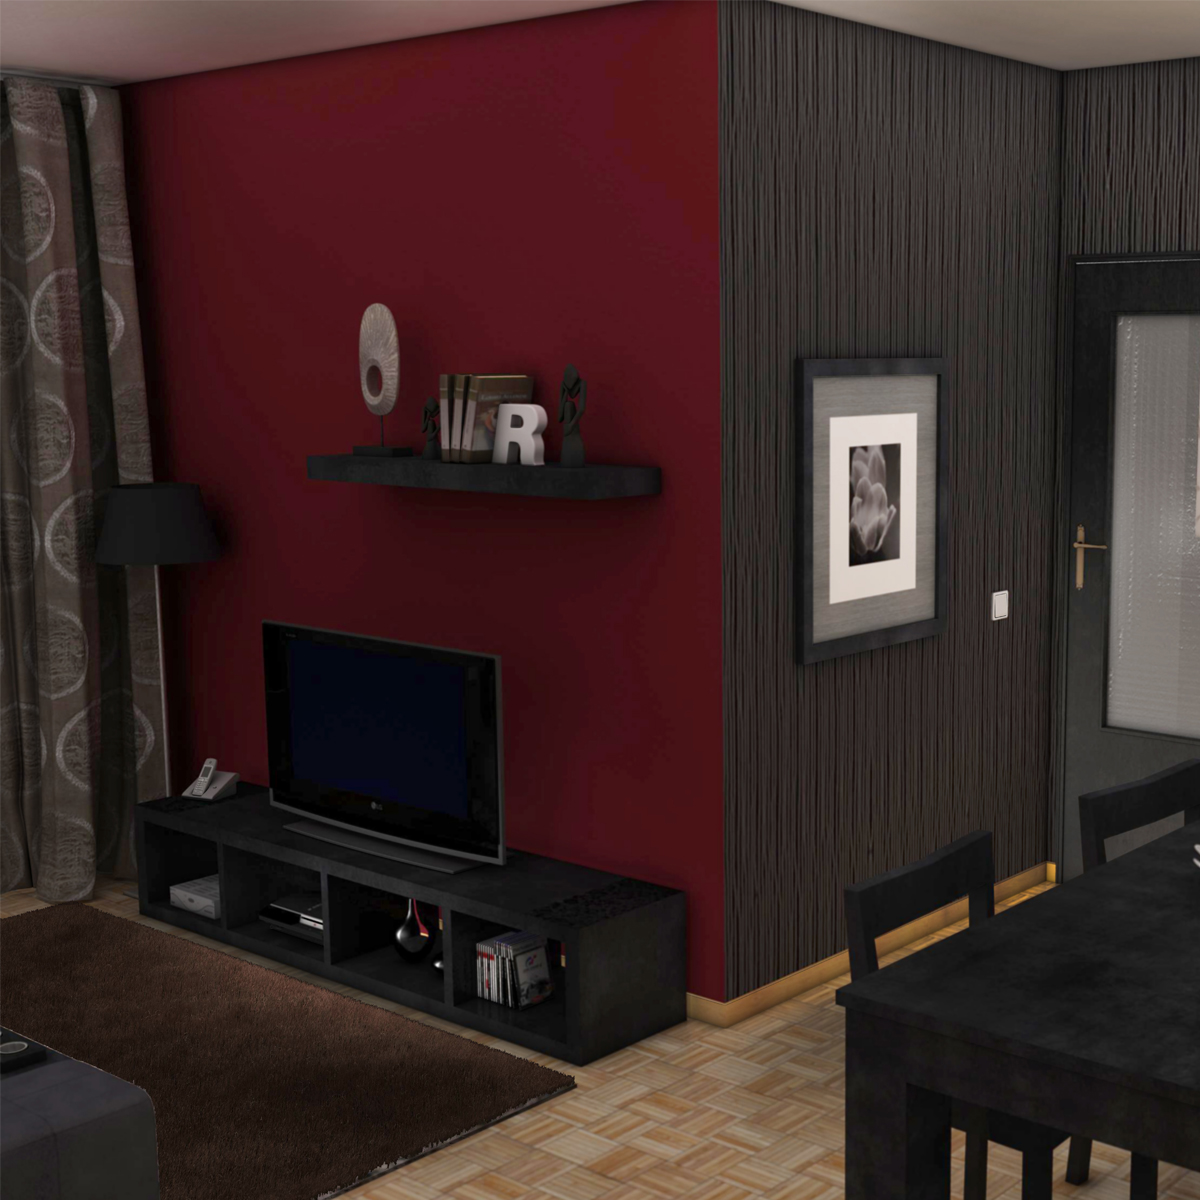 entire apartment 3d model fbx c4d ma mb obj 159636